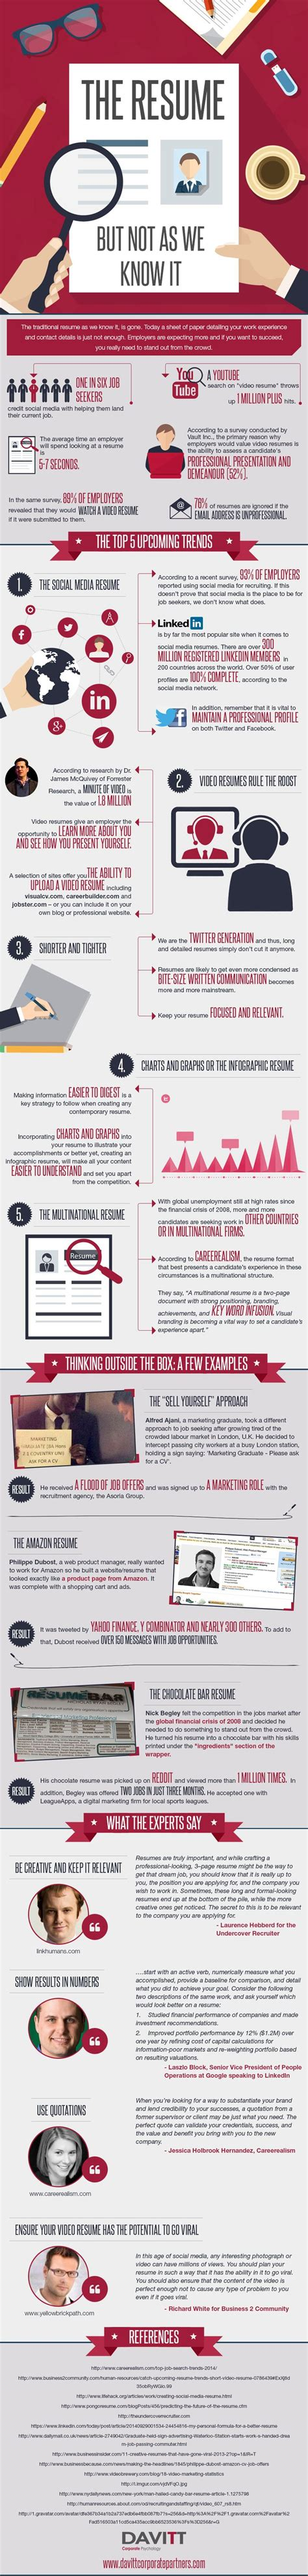 cv resume tips you need more than a paper resume infographic more